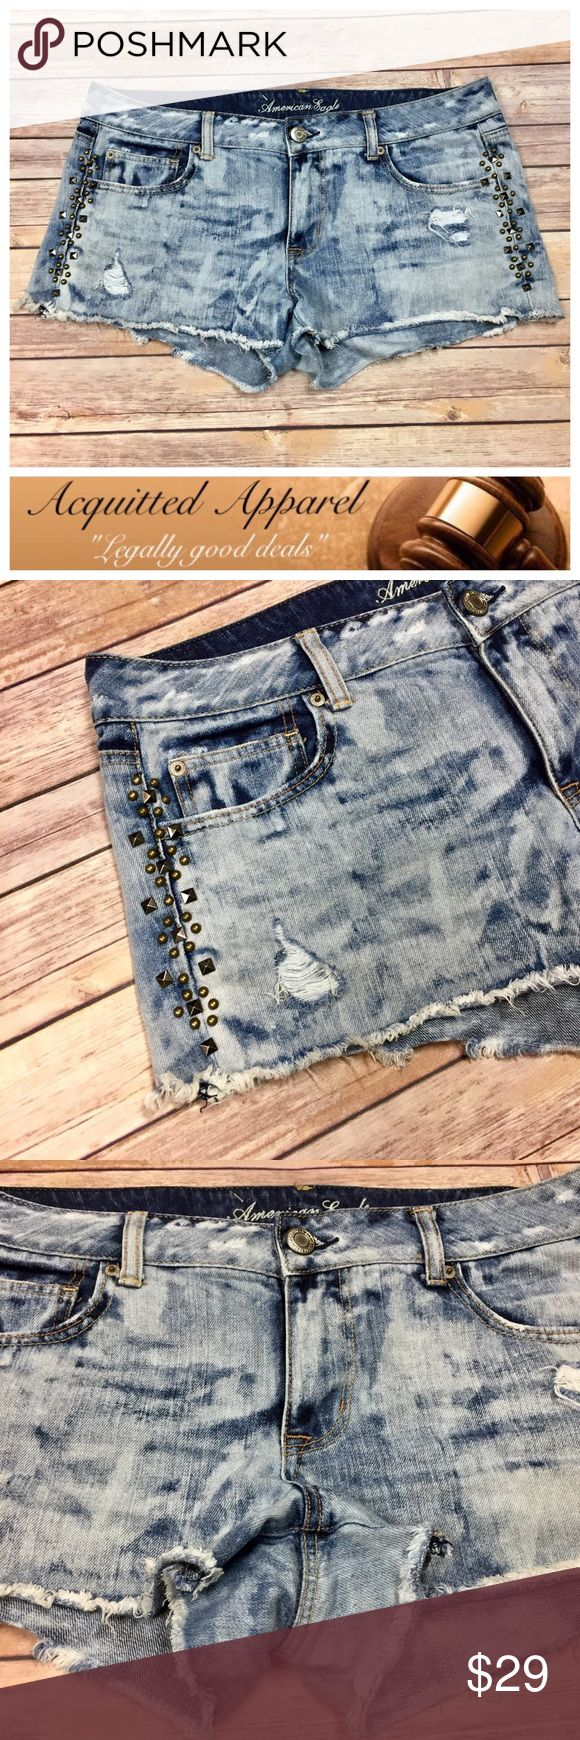 {NWOT} [AE] American Eagle Festival Shorts Denim Beautiful higher rise denim studded acid wash shorts. Size 14. Brand new without tags. American Eagle Outfitters Shorts Jean Shorts